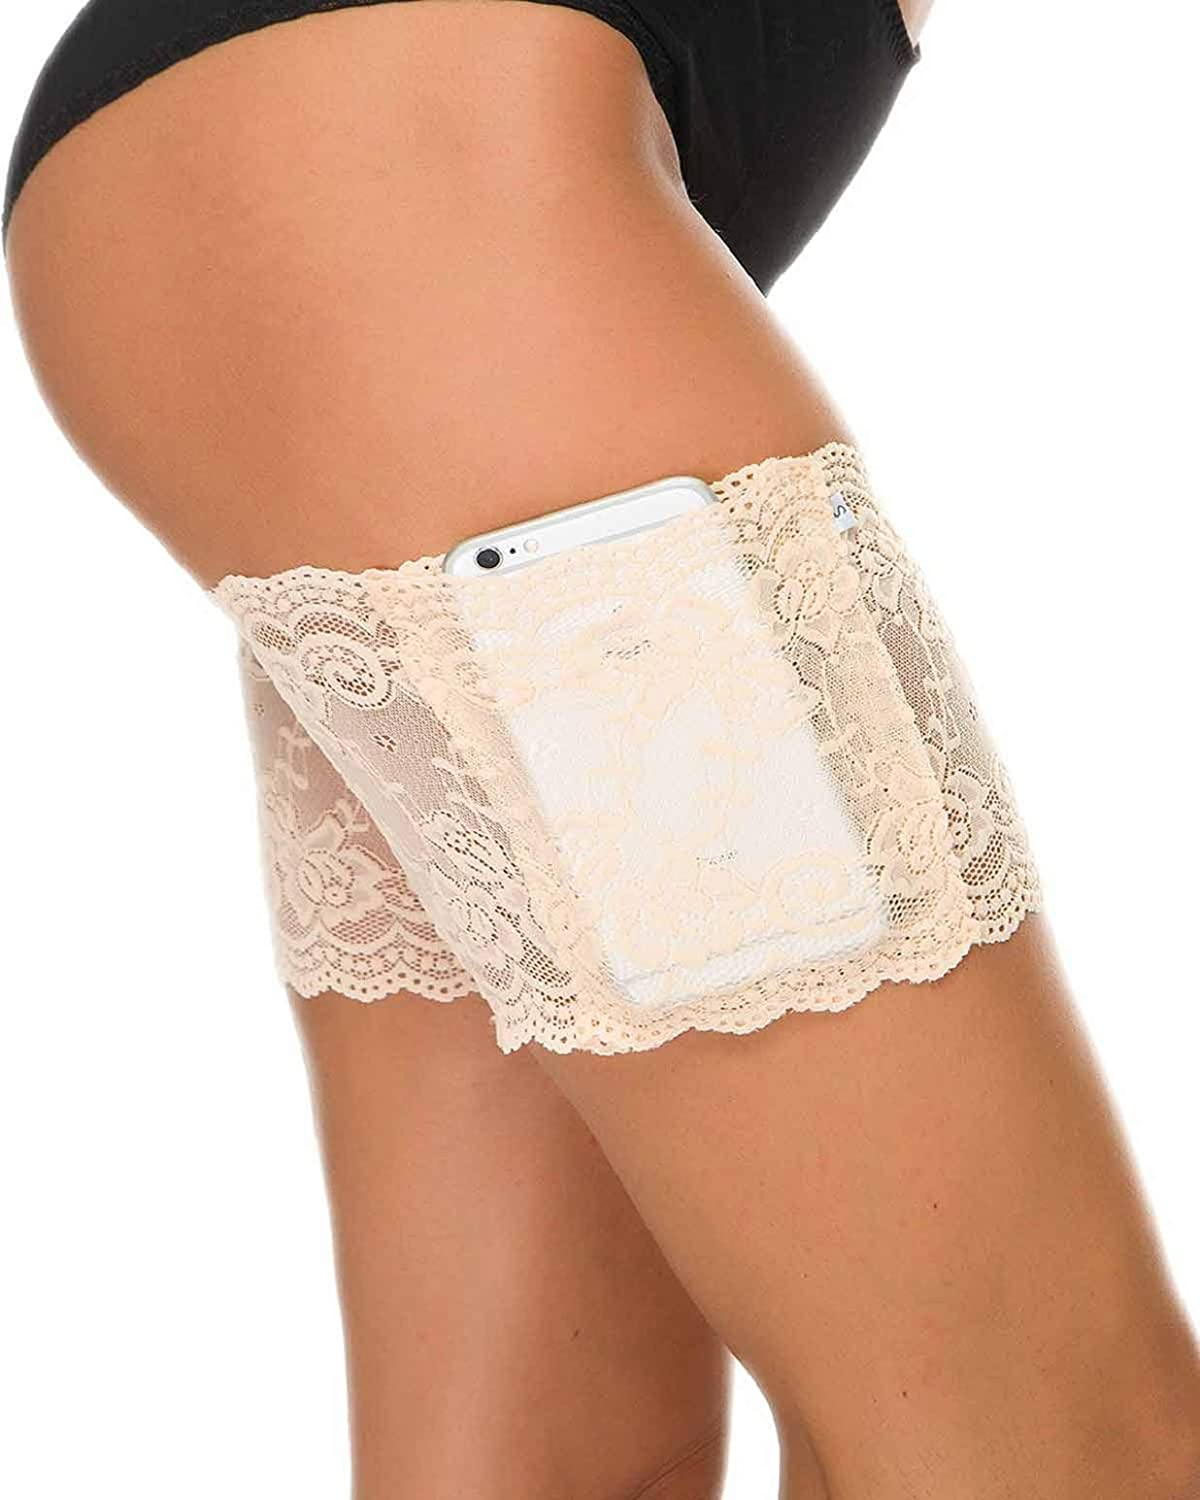 Tuopuda Women Lace Thigh Bands with Anti-Slip Silicone and Cellphone Pocket